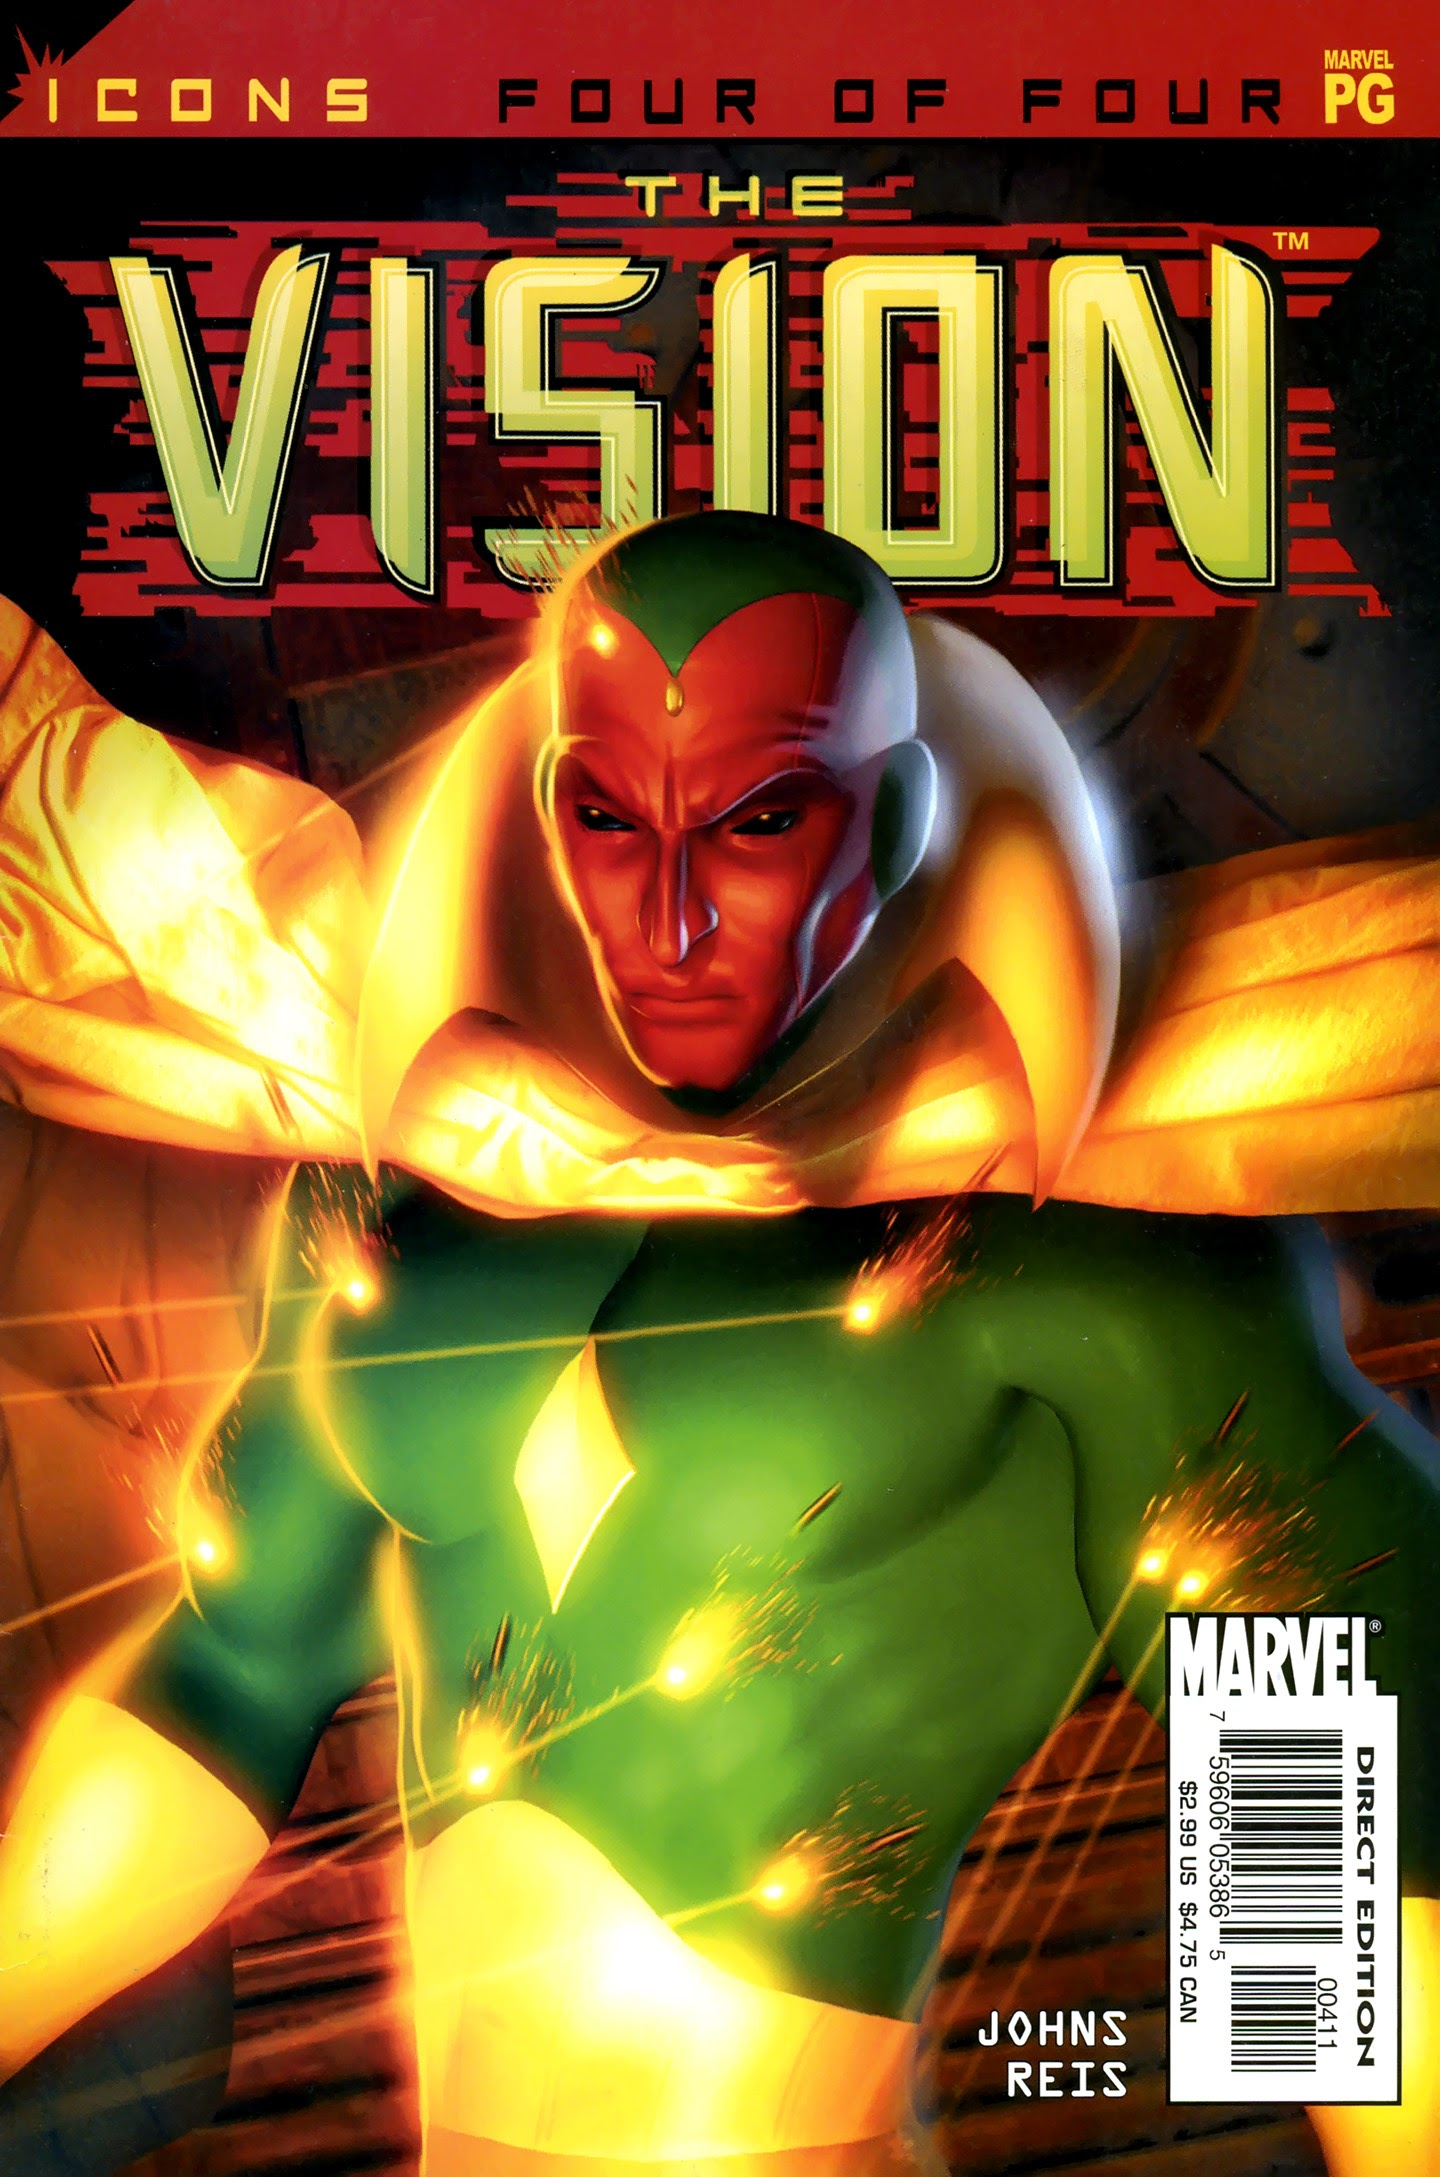 Avengers Icons: The Vision 4 Page 1